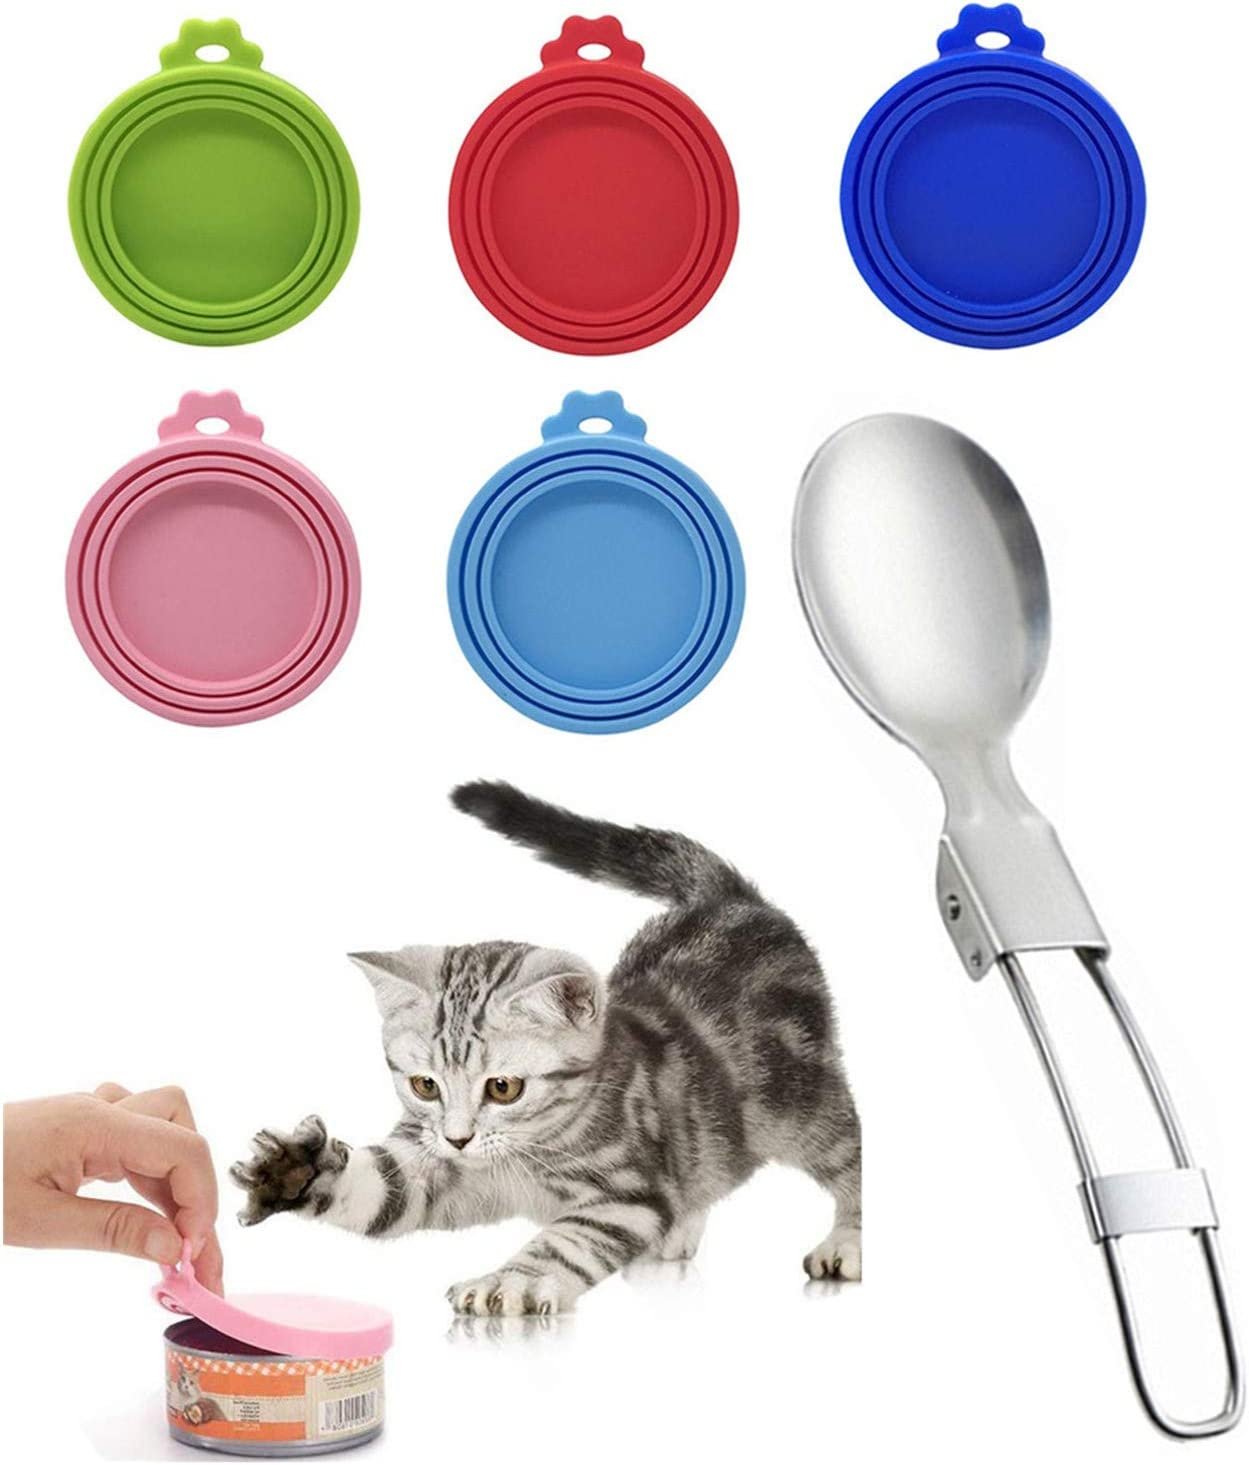 HDCBMCDDM-US 5 Pack Silicone Pet Food Can Covers & 1 Pcs Pet Folding Spoon, Food Grade Silicone Pet Can Lid Universal Food Cover for Dog Cat Can Food